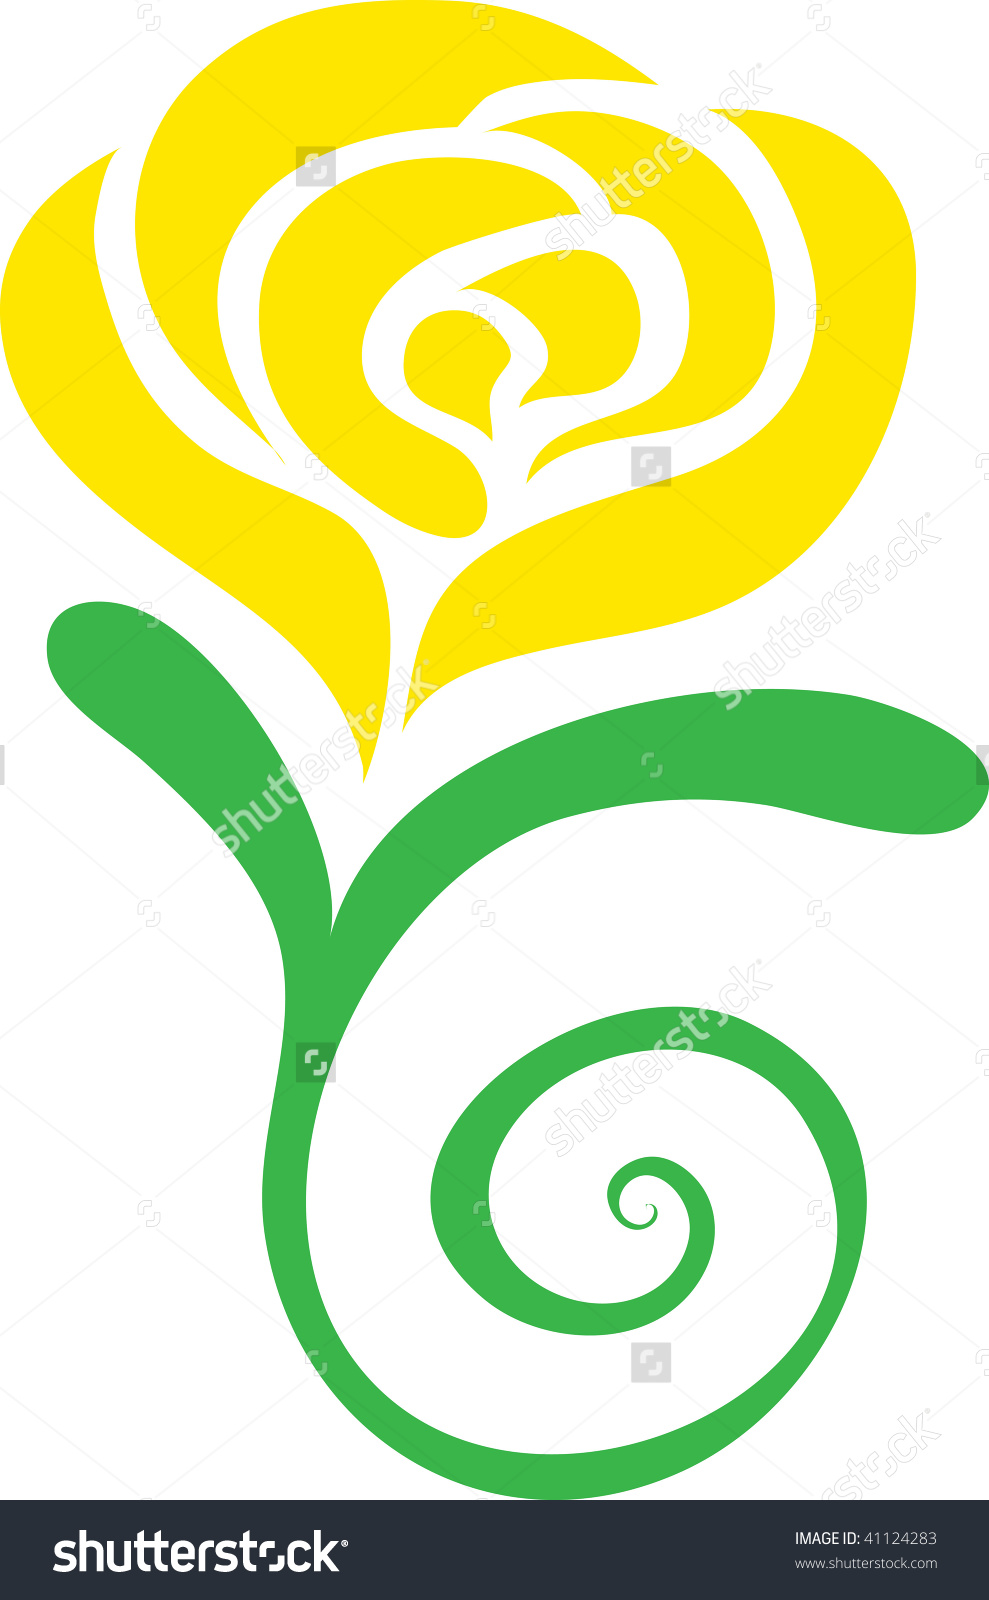 Clip art illustration of a yellow rose. Preview. Save to a lightbox